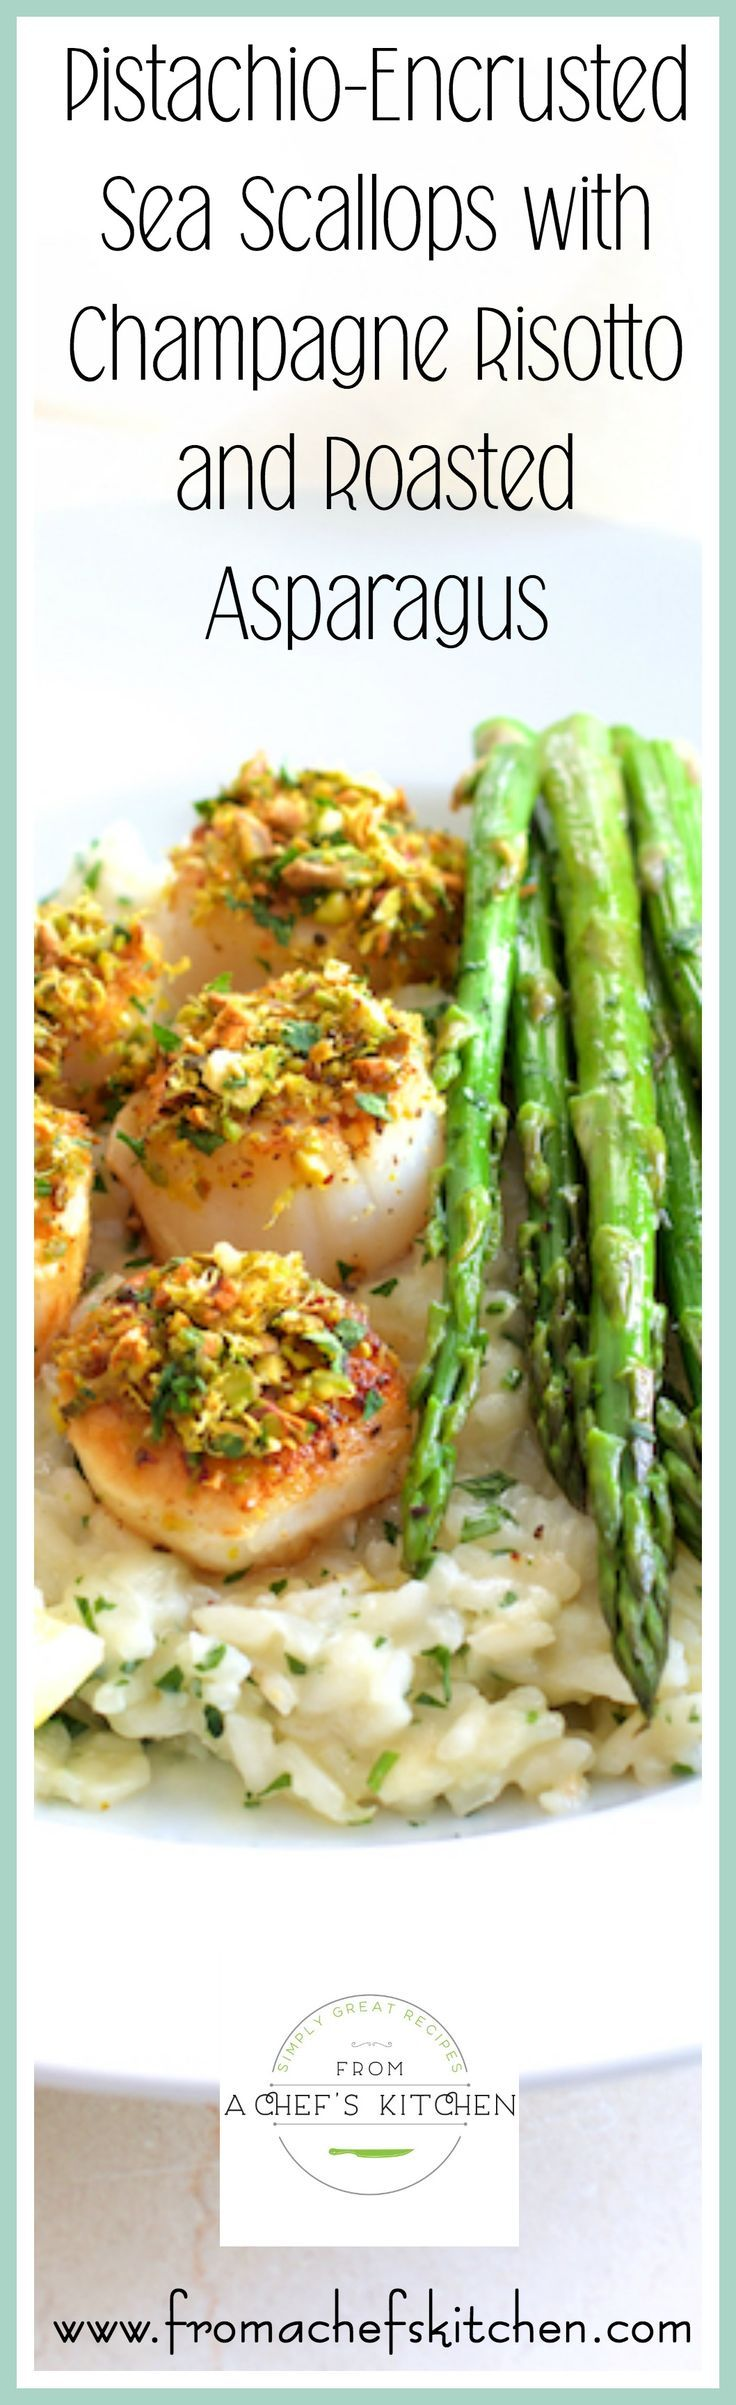 Pistachio Encrusted Sea Scallops with Champagne Risotto and Roasted Asparagus is a beautiful, restaurant-quality meal for two that's easy to prepare at home.